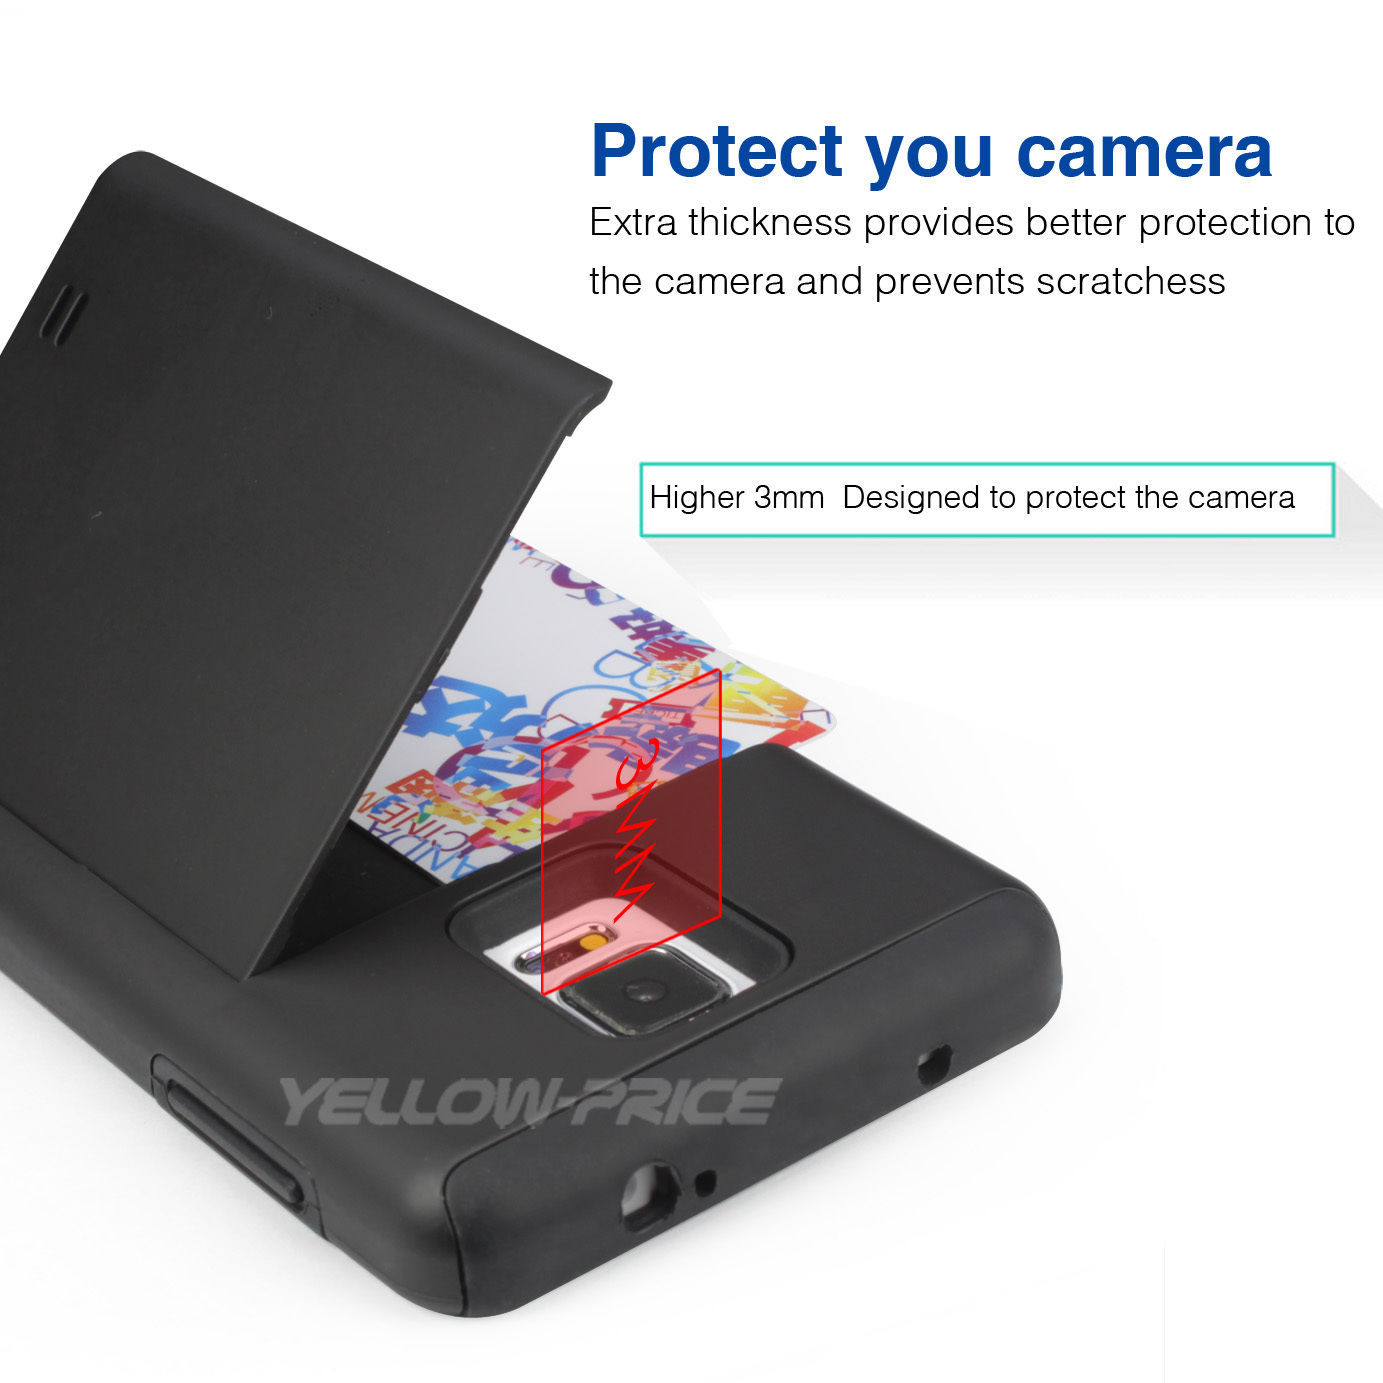 LIVEDITOR NEWCard Pocket Wallet Slim Case Kick-Stand Cover for Samsung Galaxy Note 4 N9100 - image 5 of 6